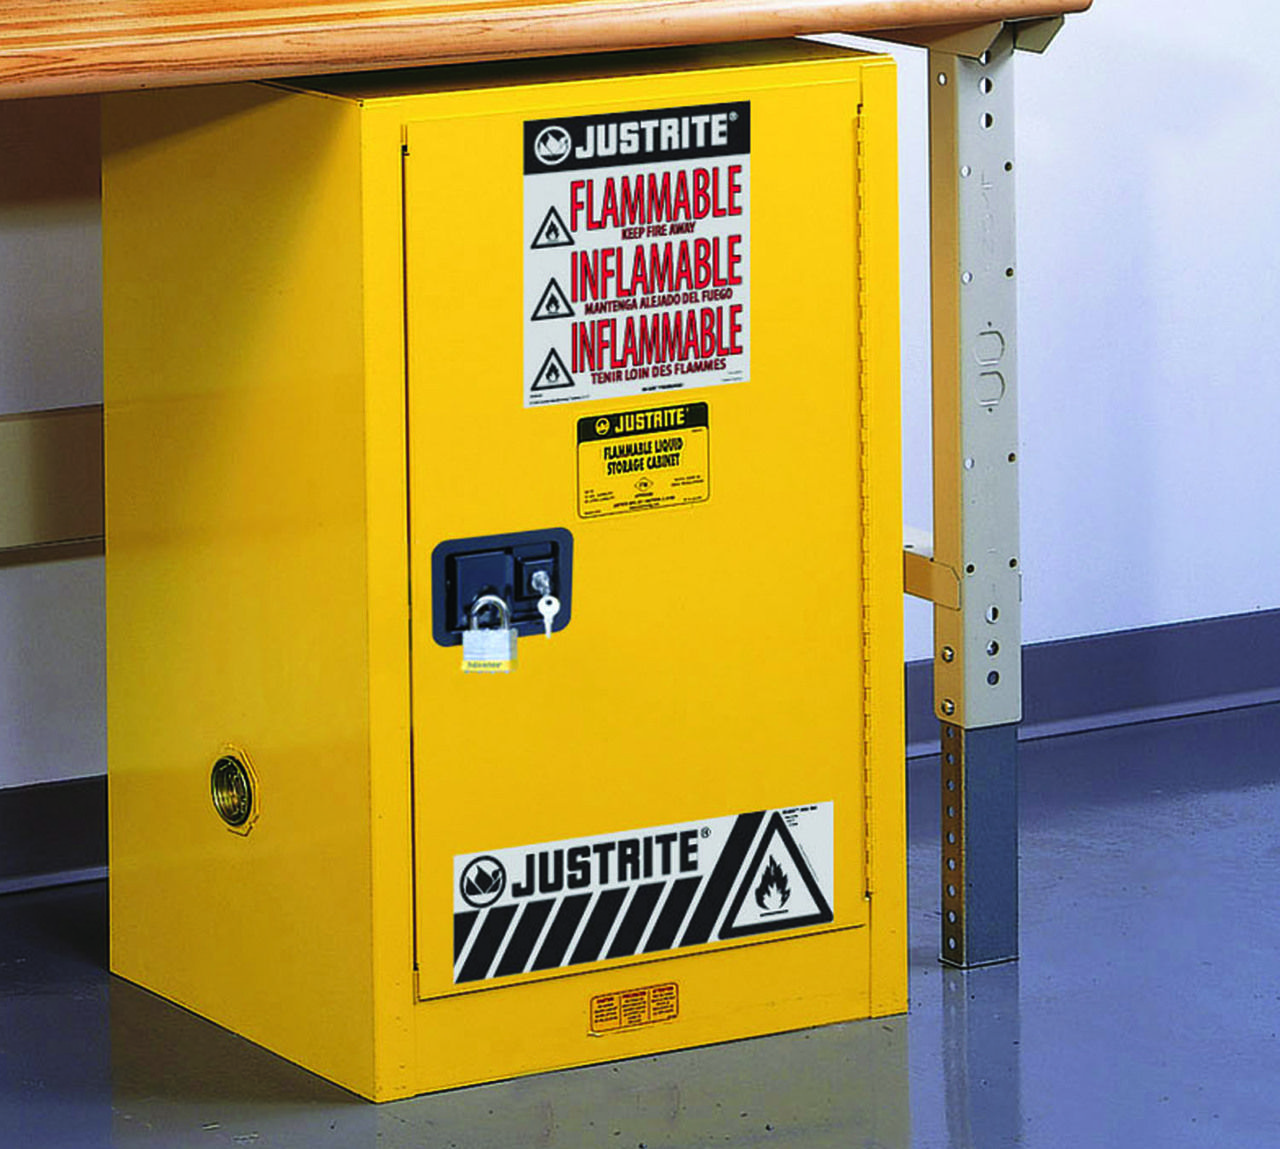 Justrite 891220 12 Gallon Safety Cabinet Compac Sure Grip Ex Self Close Storage Utility Storage Cabinet Buy Cabinets